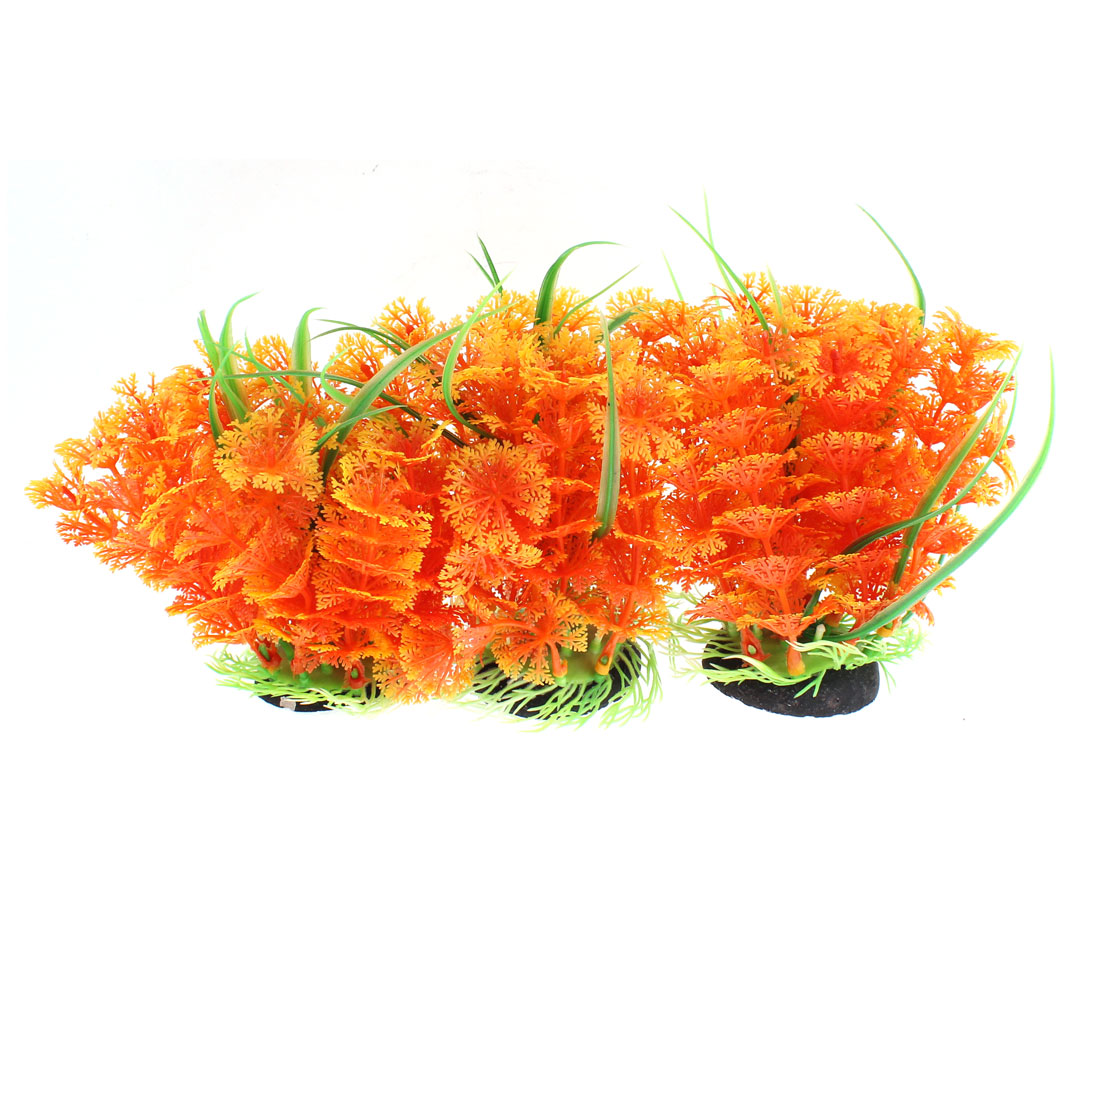 Aquarium Fish Tank Plastic Artificial Water Grass Plant Landscape Orange 3pcs